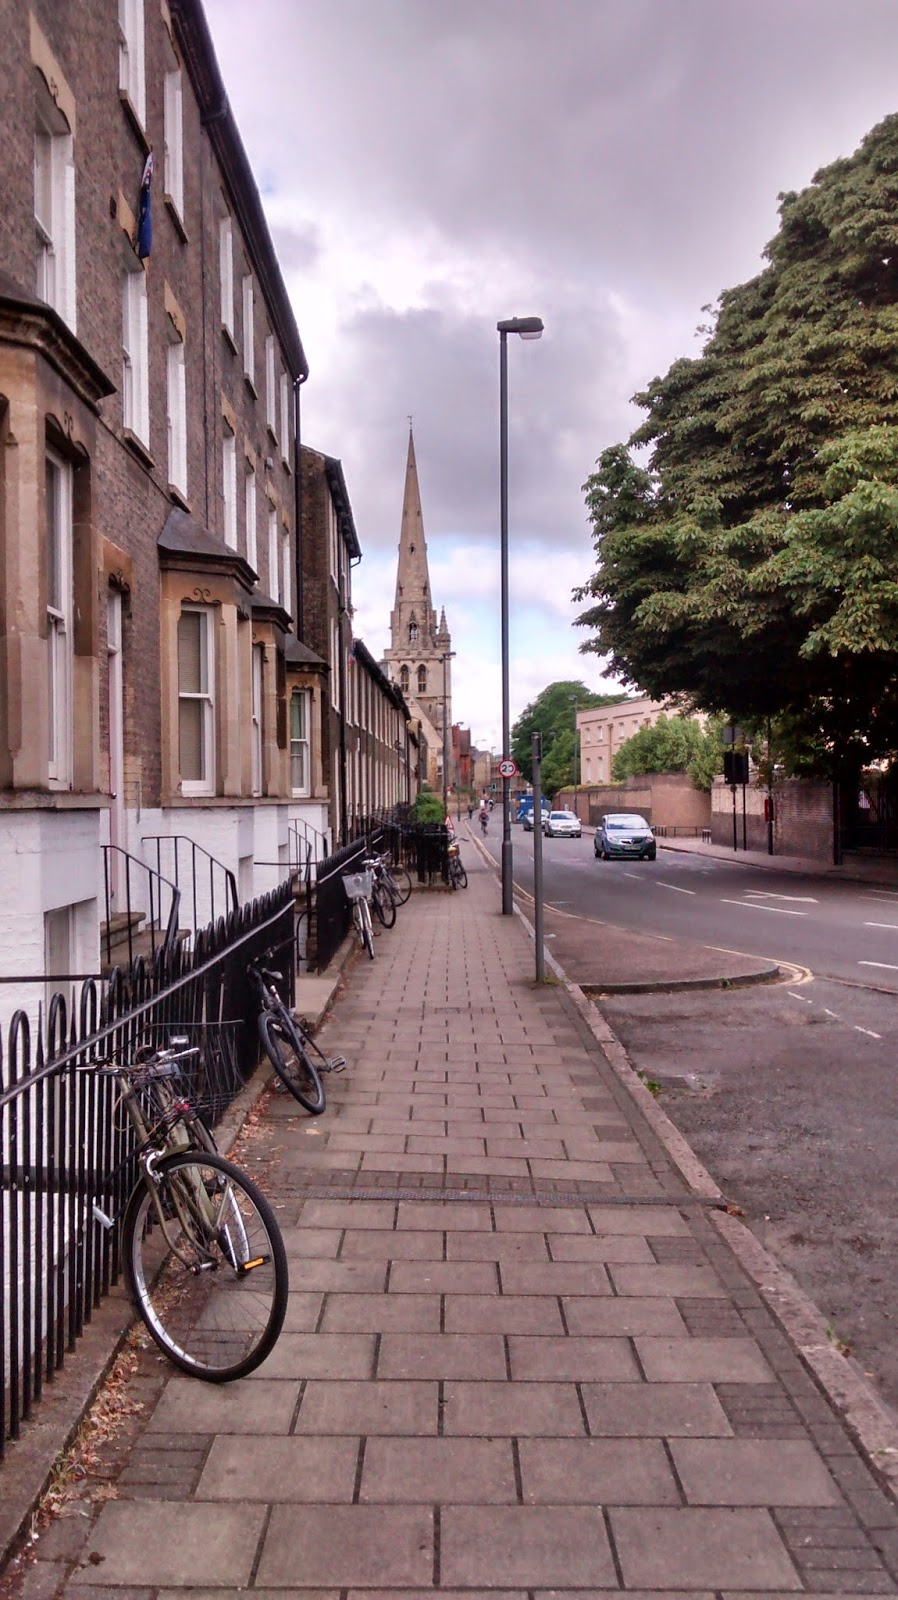 A photo of a street in Cambridge